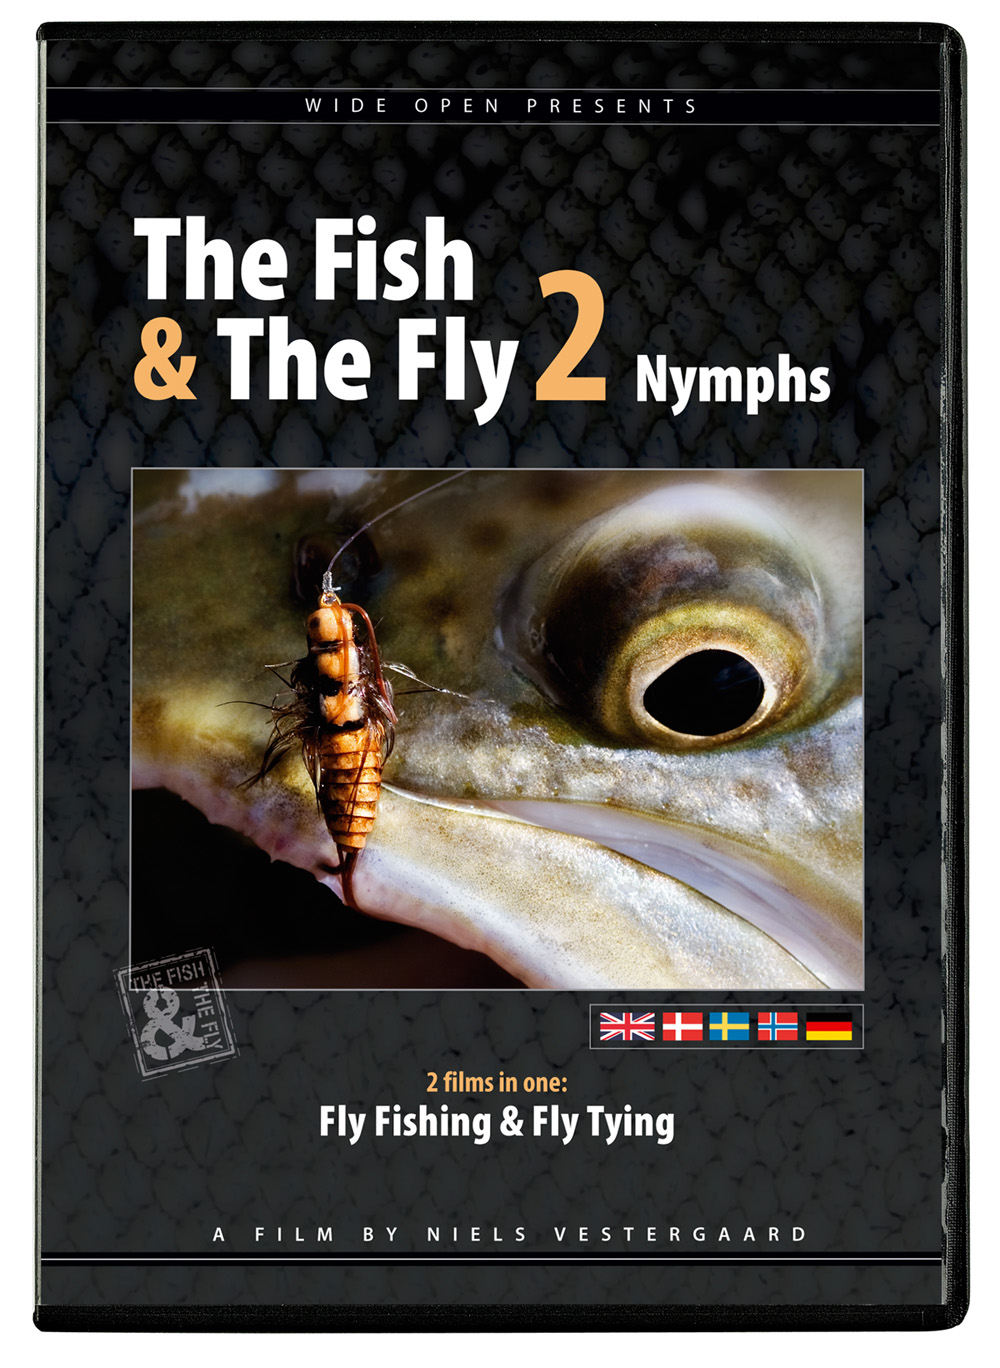 The Fish & The Fly 2 Nymphs DVD